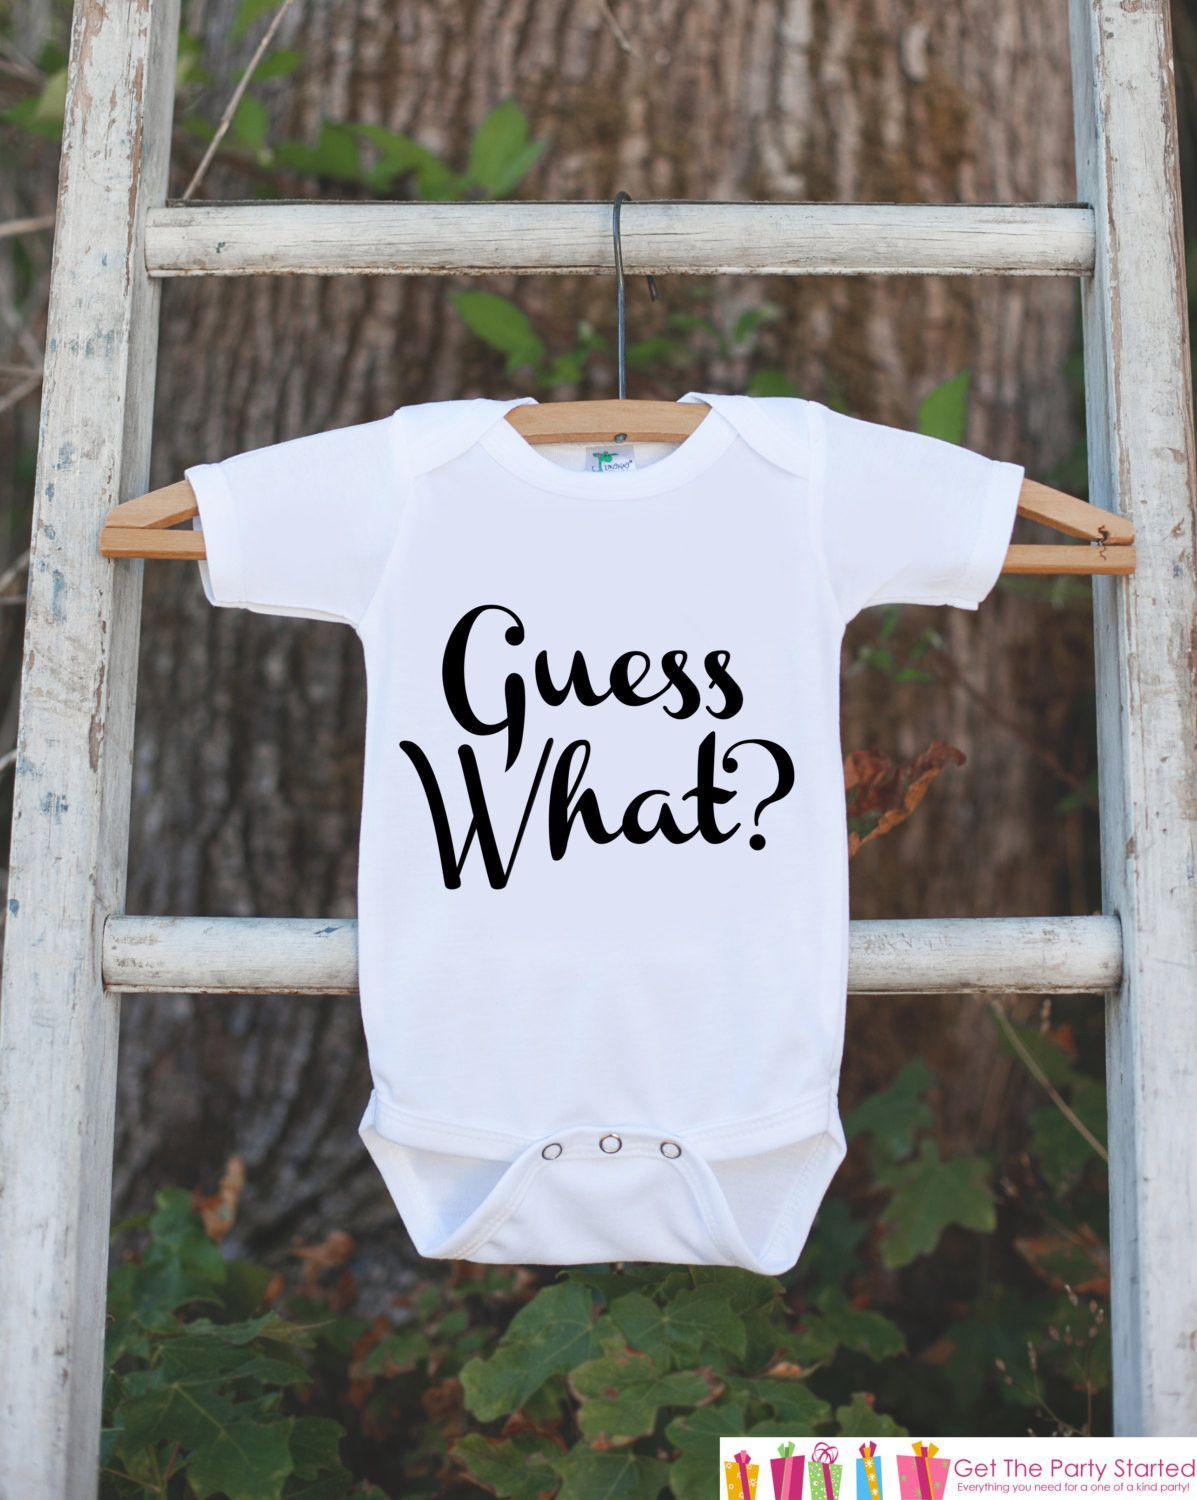 5137144cb3e8f Pregnancy Announcement - Guess What? Outfit for New Baby - Pregnancy ...